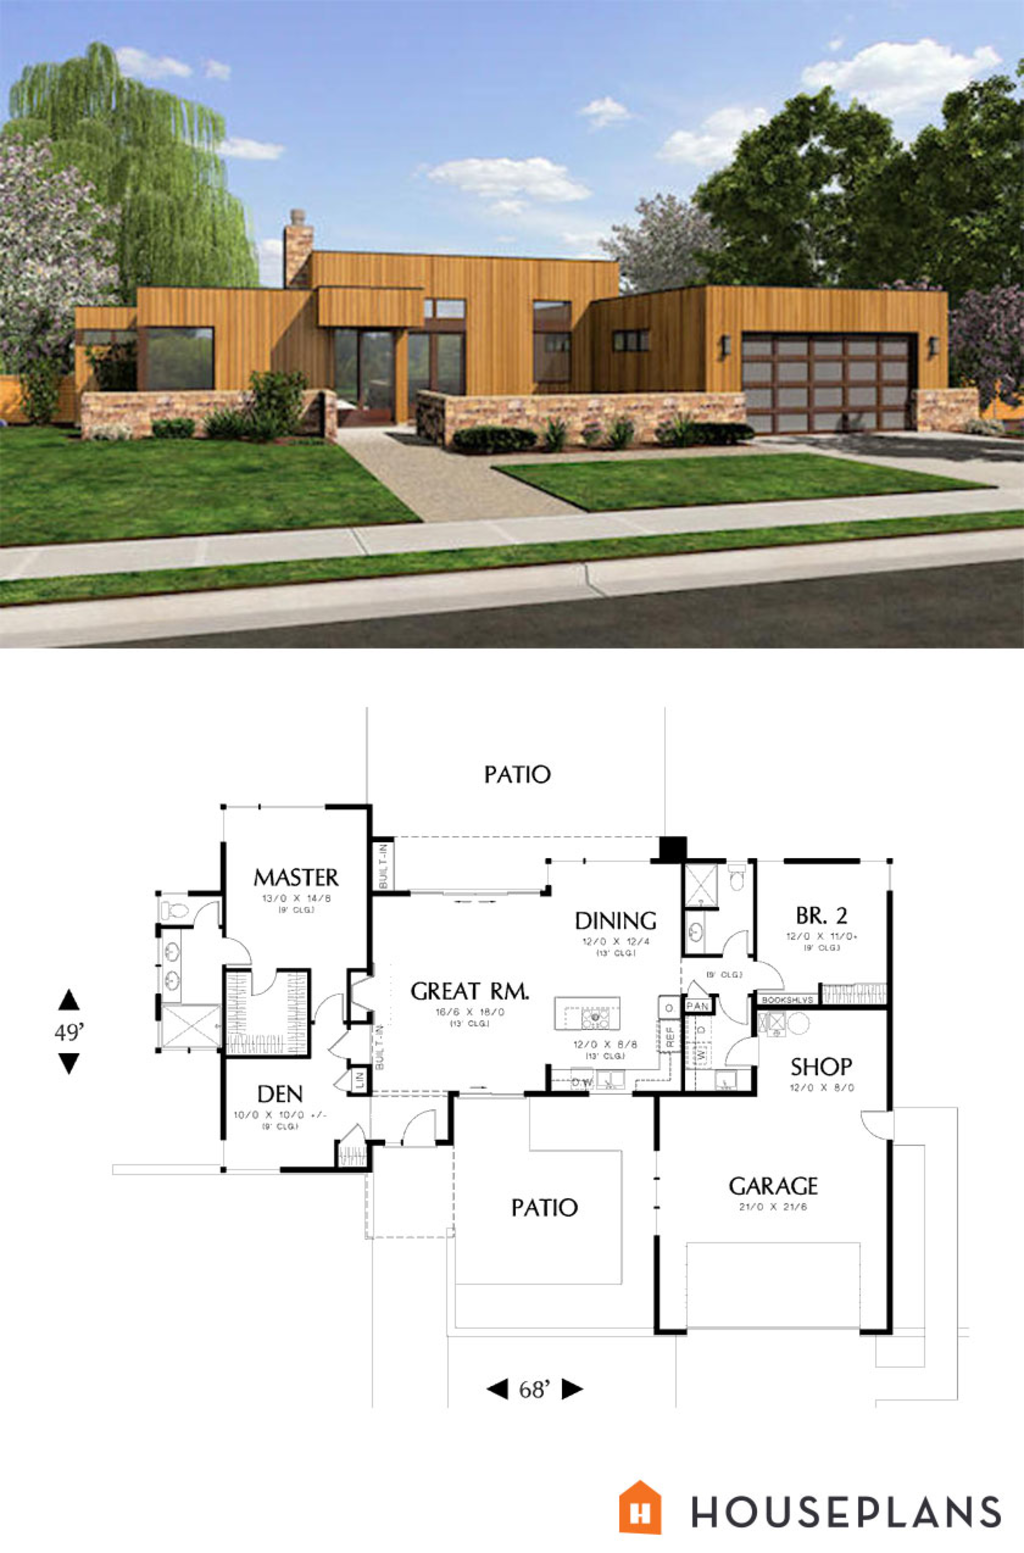 small modern house plans. small modern house design 1500sft houseplans  48 505